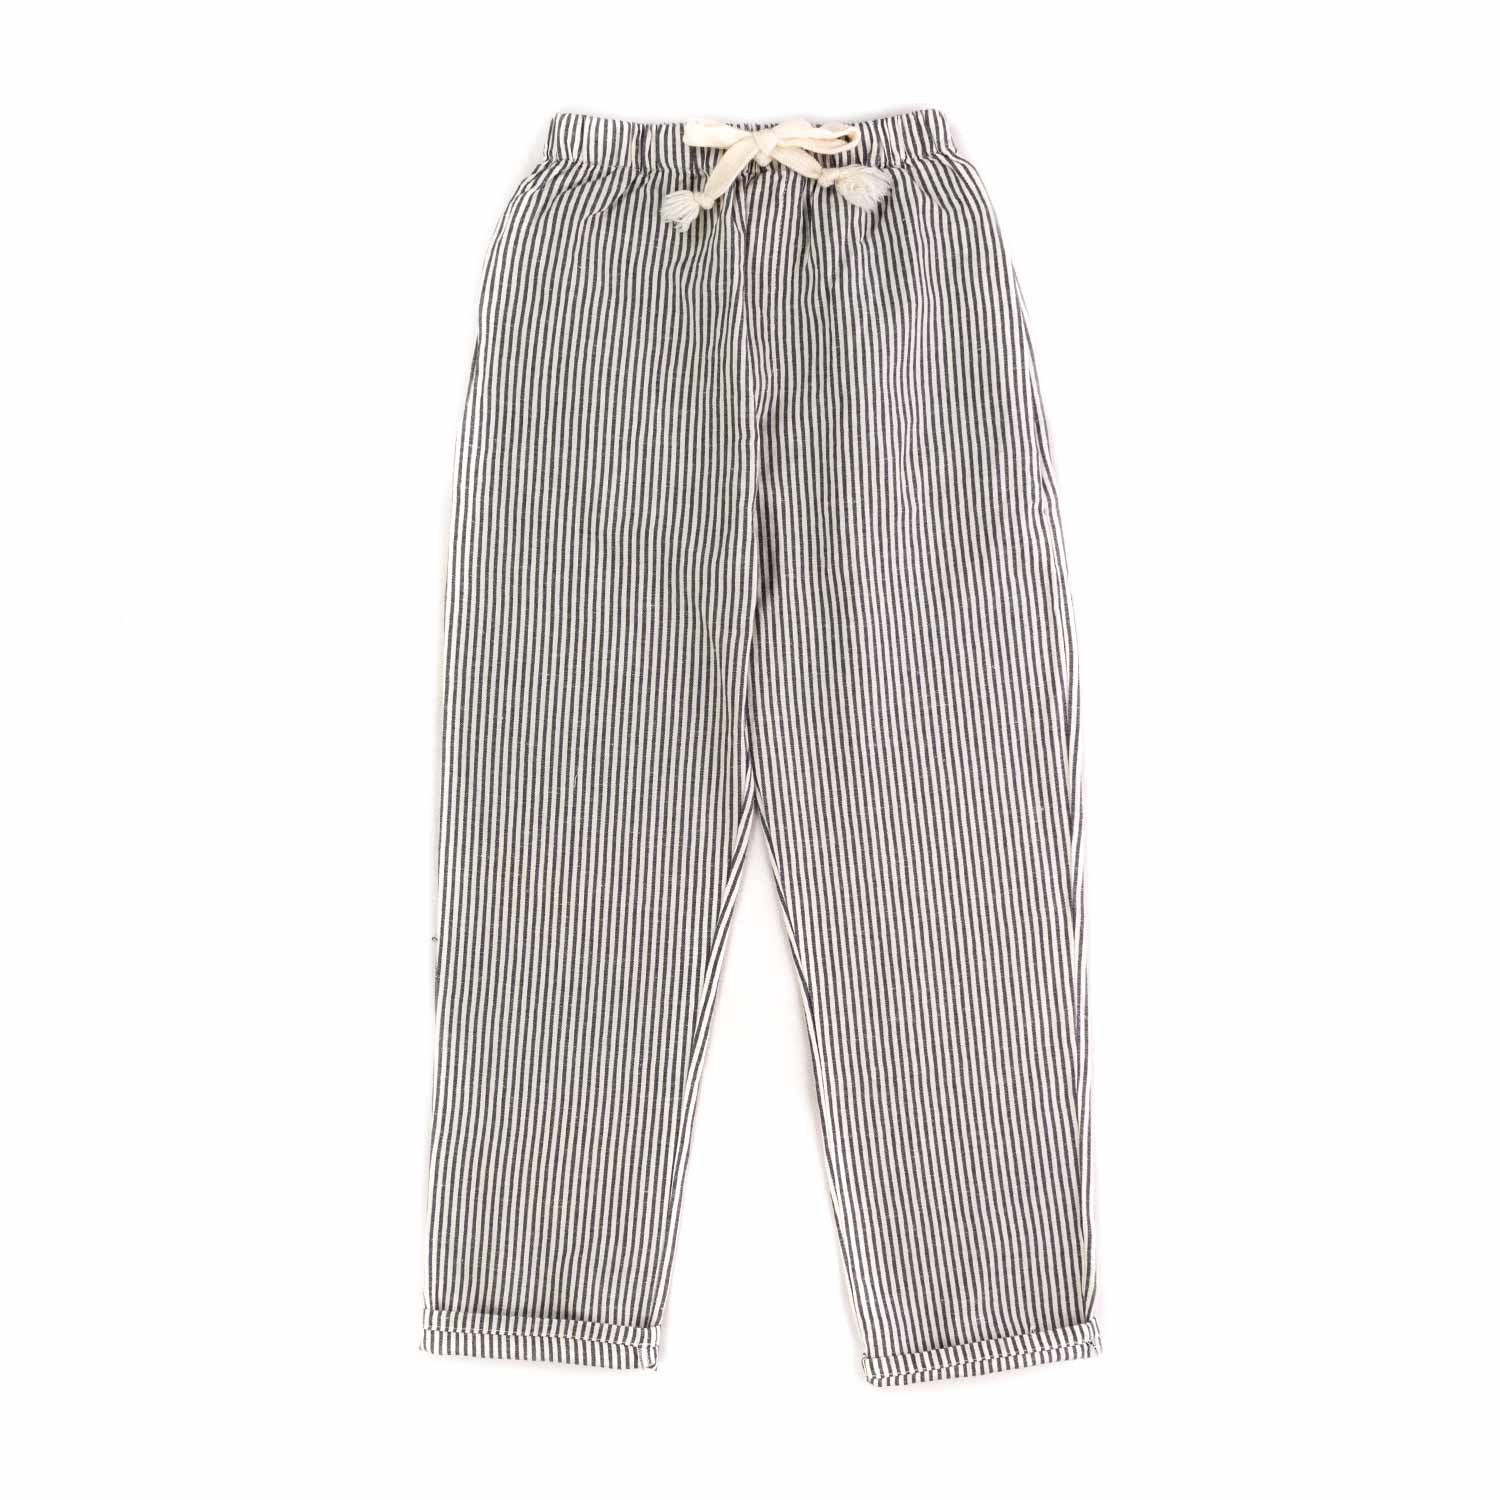 d0696ee3bea8 Tocotò Vintage - Girls Blue Striped Trousers - annameglio.com shop ...